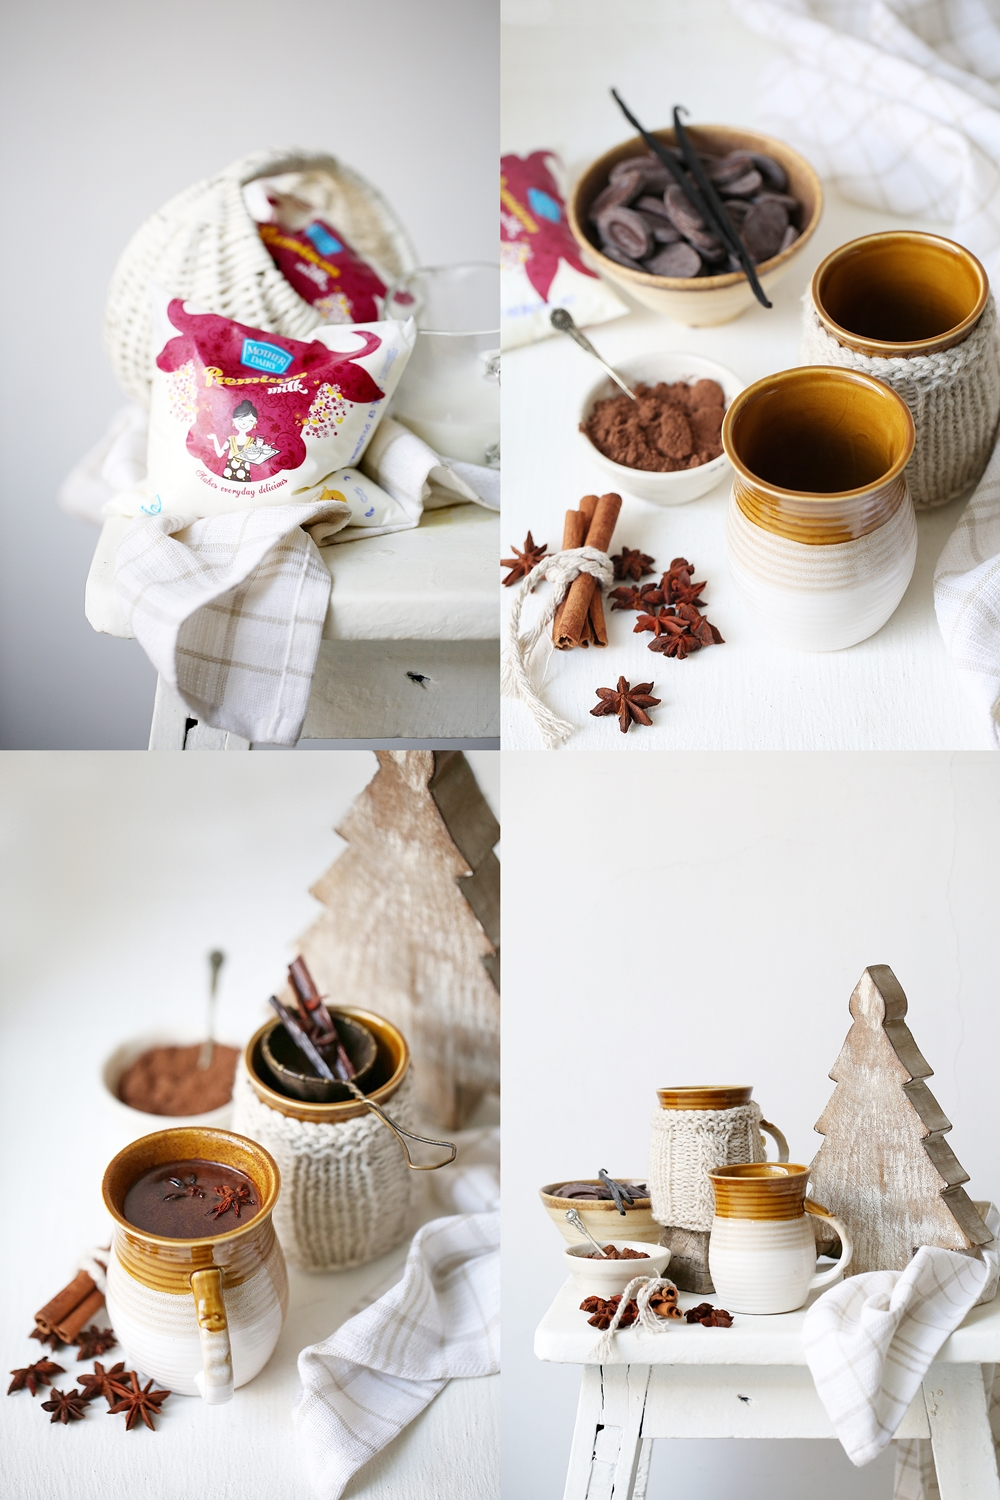 Rich Spiced Hot Chocolate - Passionate About Baking